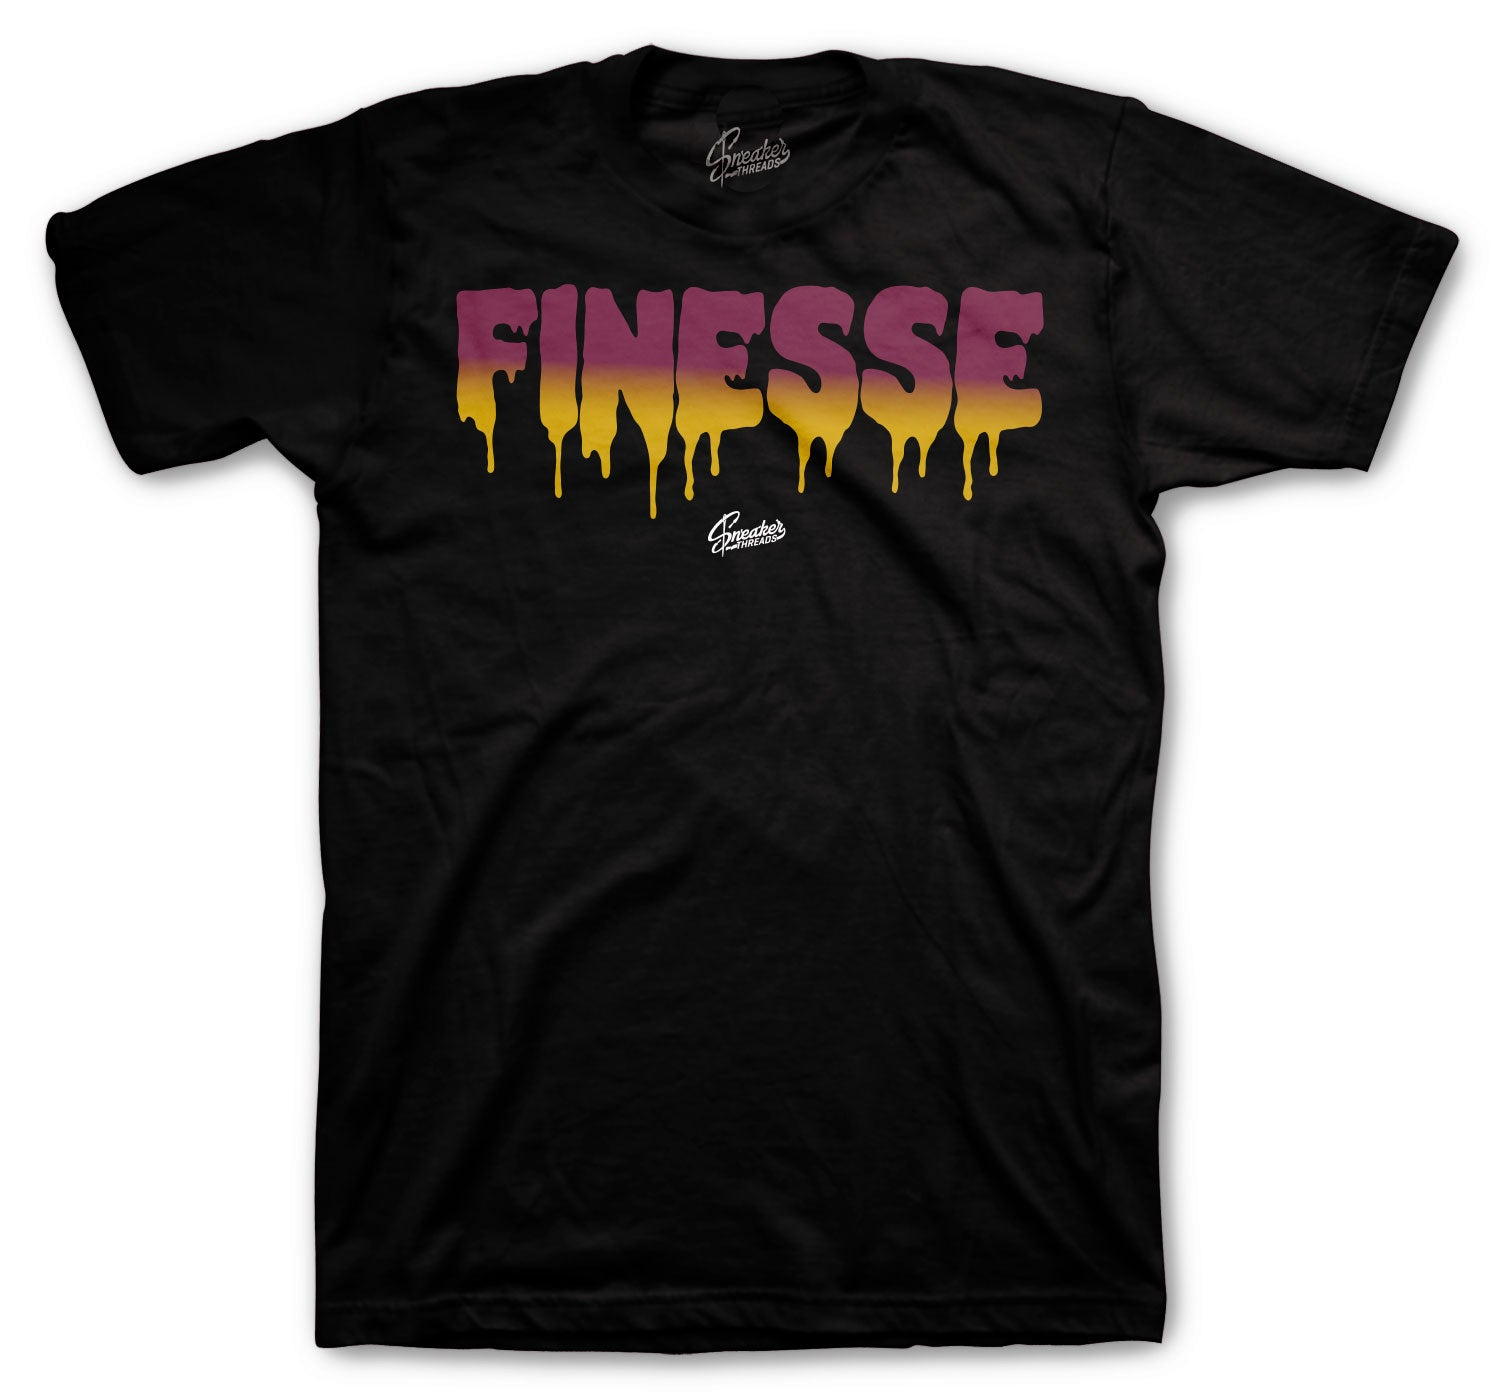 Jordan 6 Singles Day Shirt - Finesse - Black